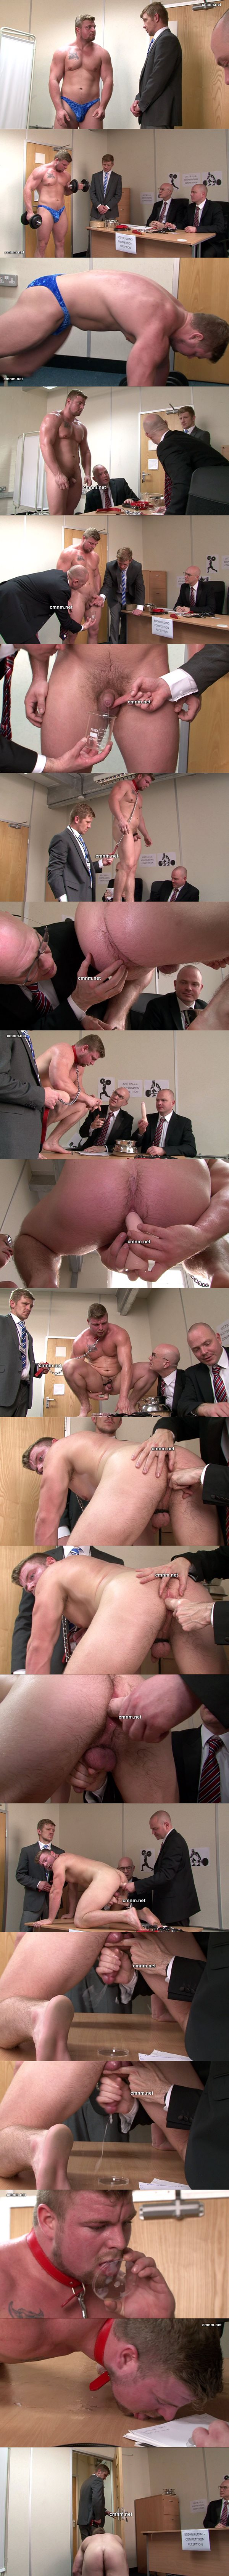 Masculine bodybuilder Brad gets humiliated, ass dildo fucked and jerked off by three creepy masters at Cmnm 02